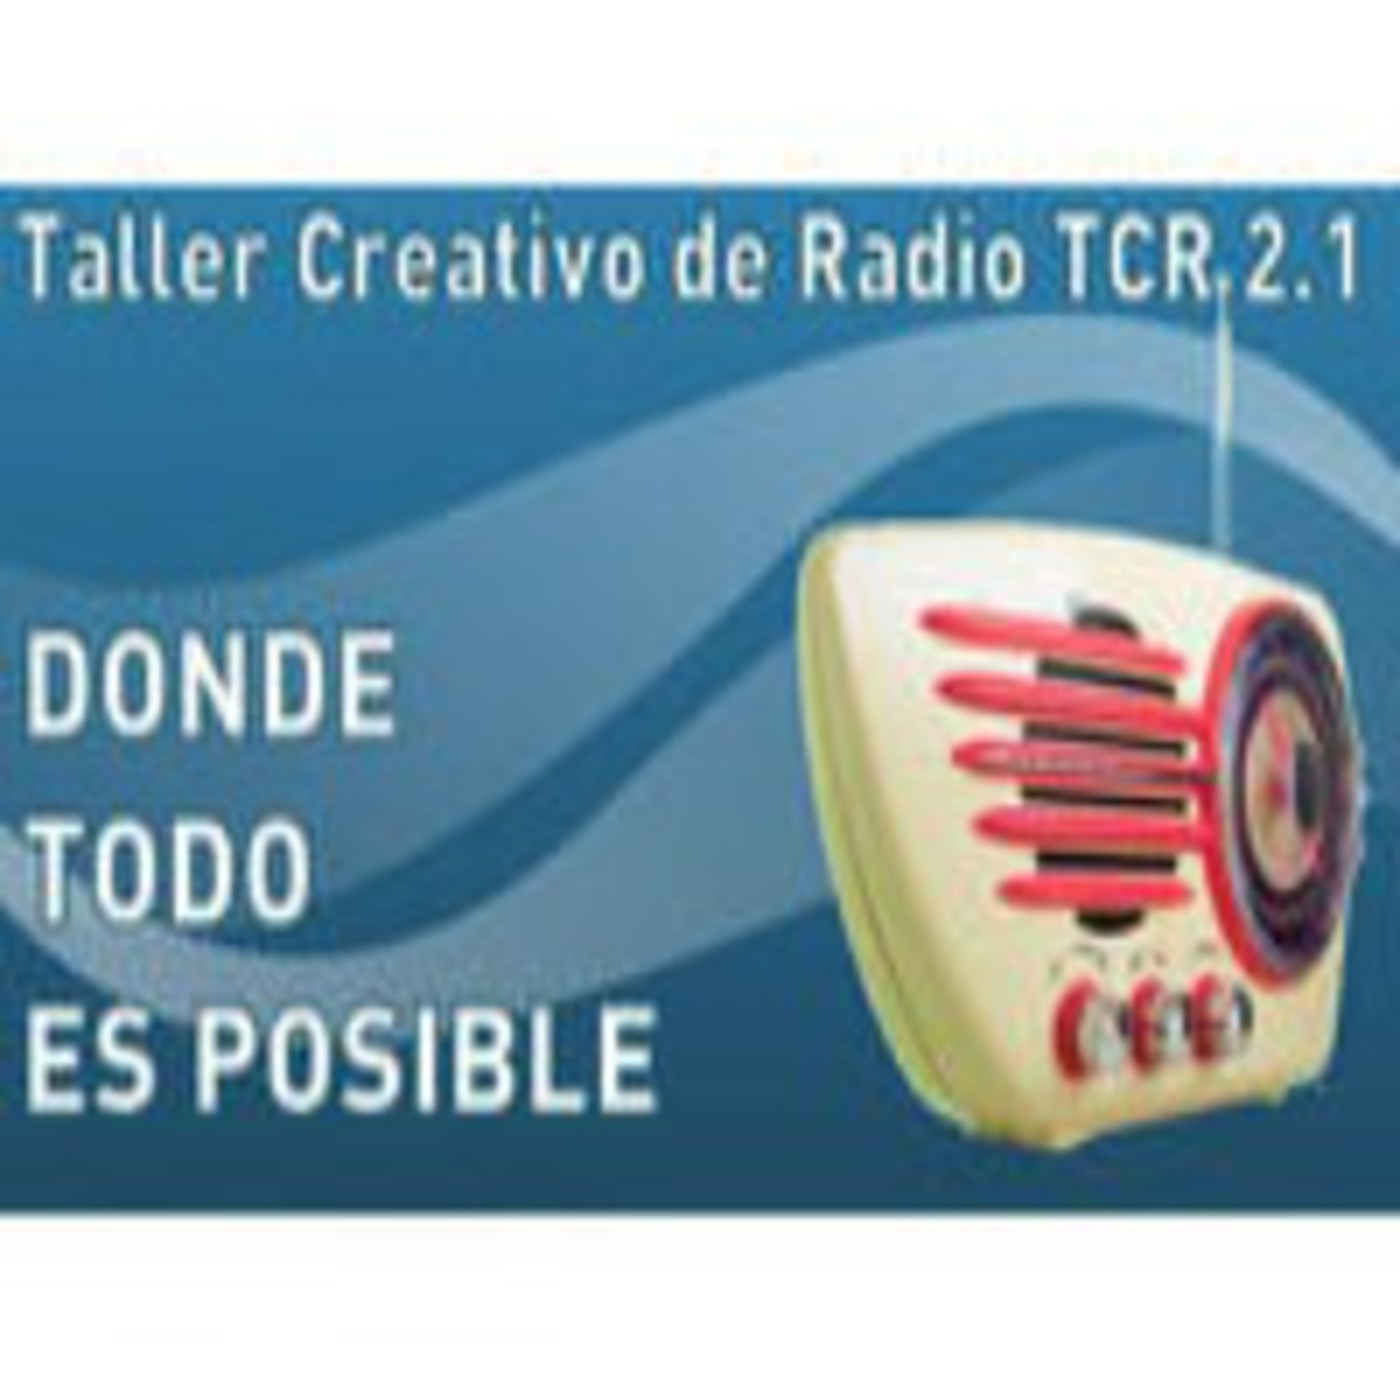 <![CDATA[TCR 2.1. Donde todo es posible]]>